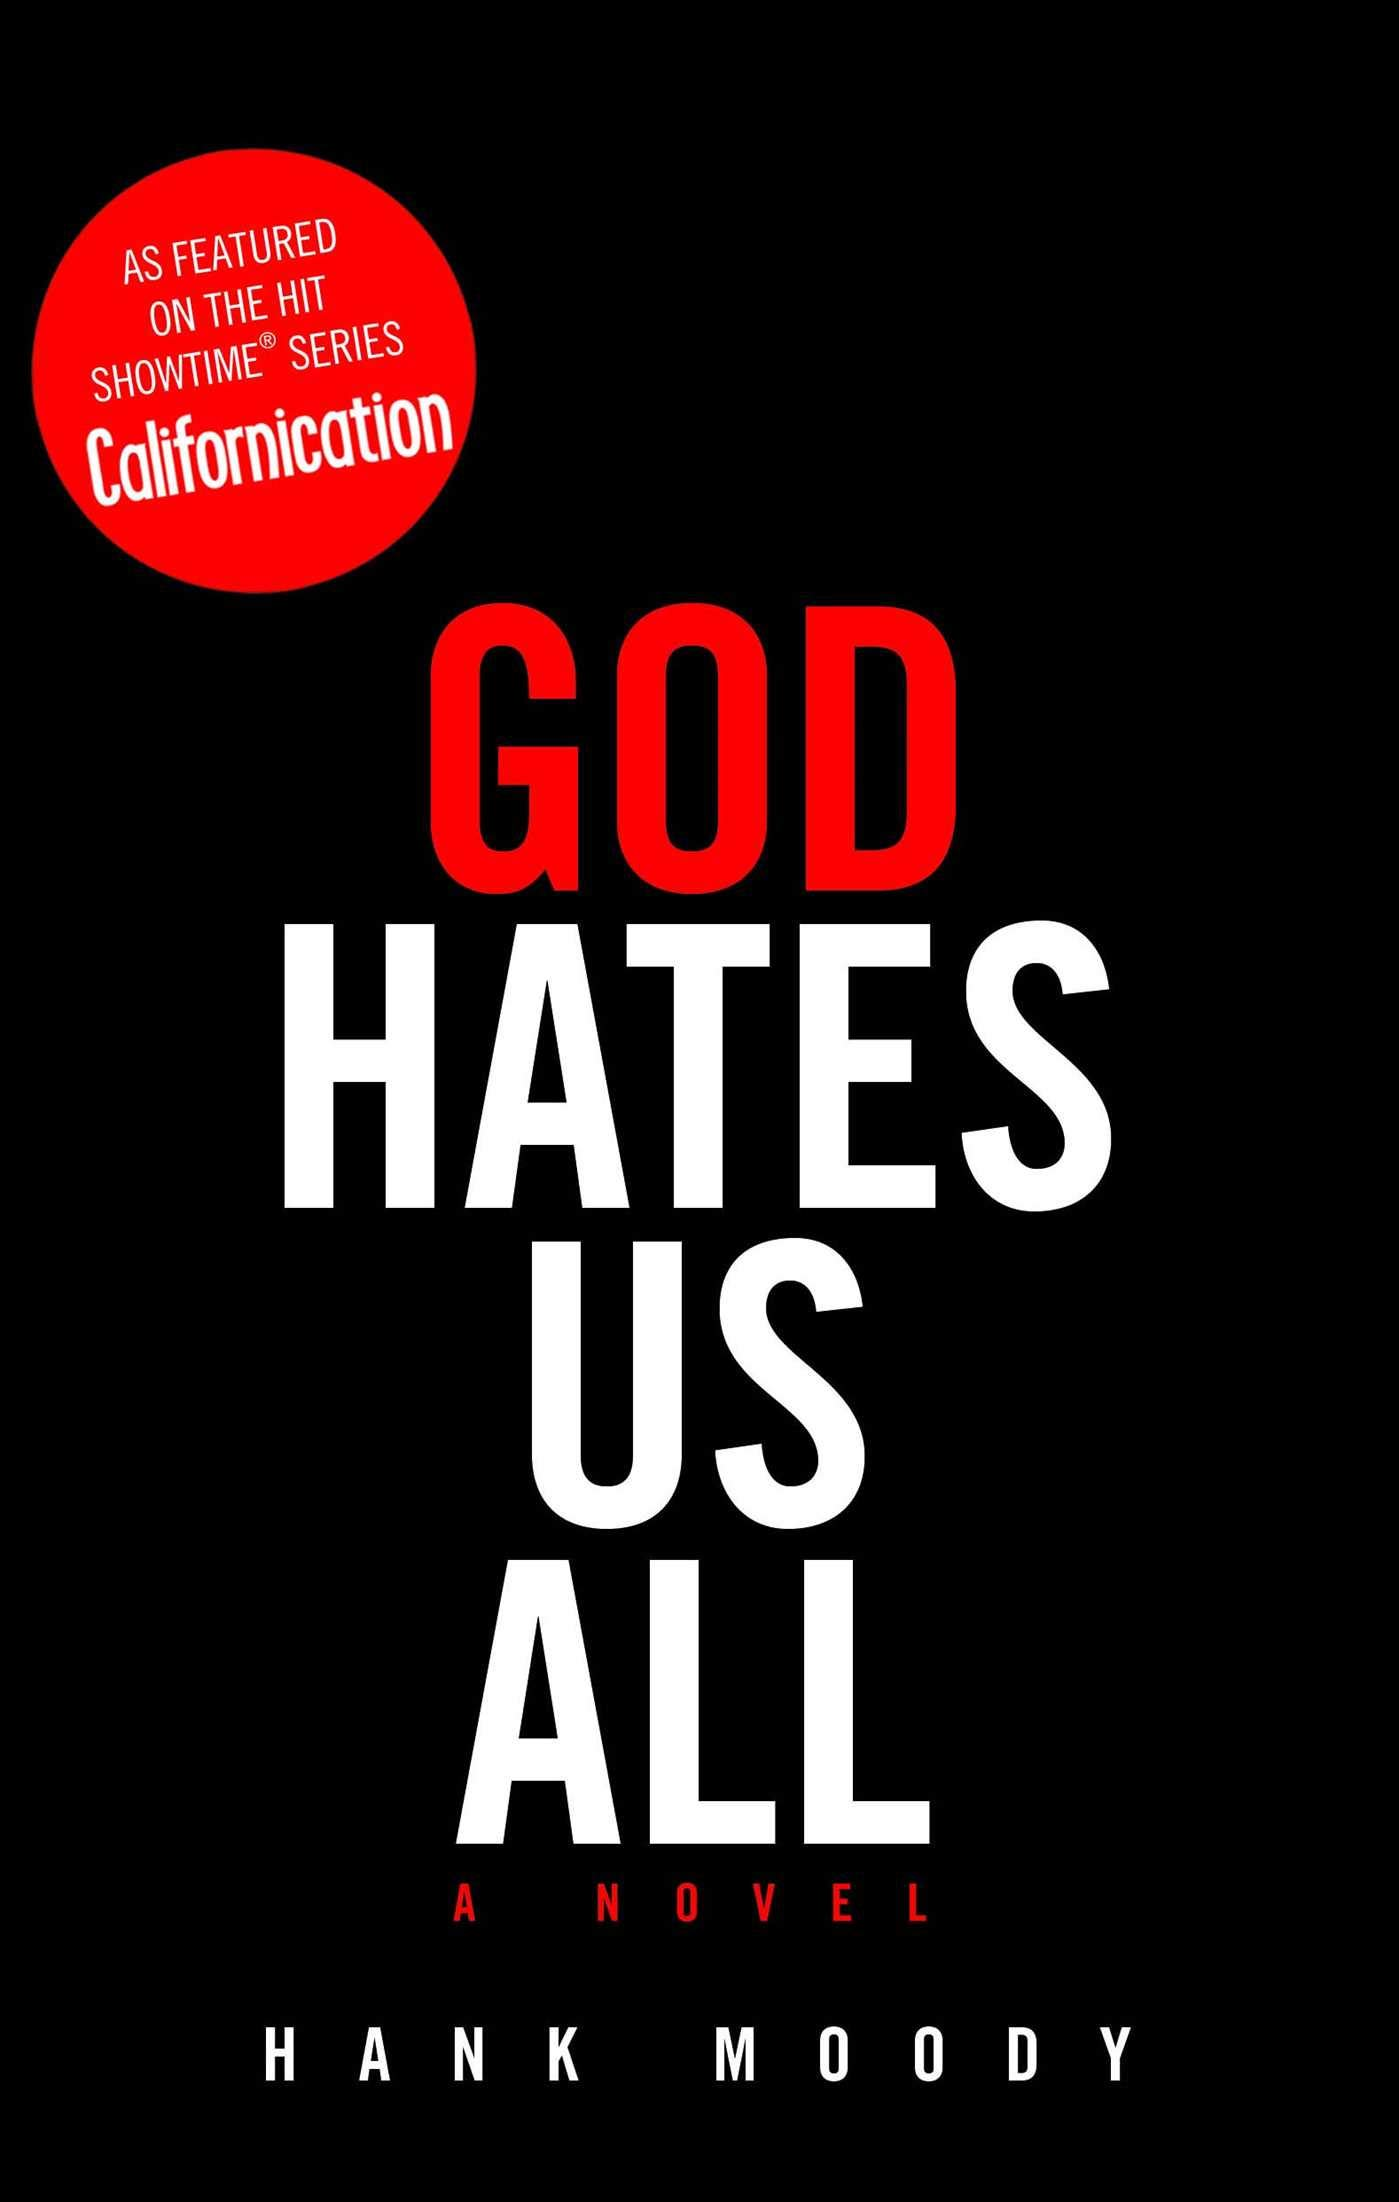 us god all book hates